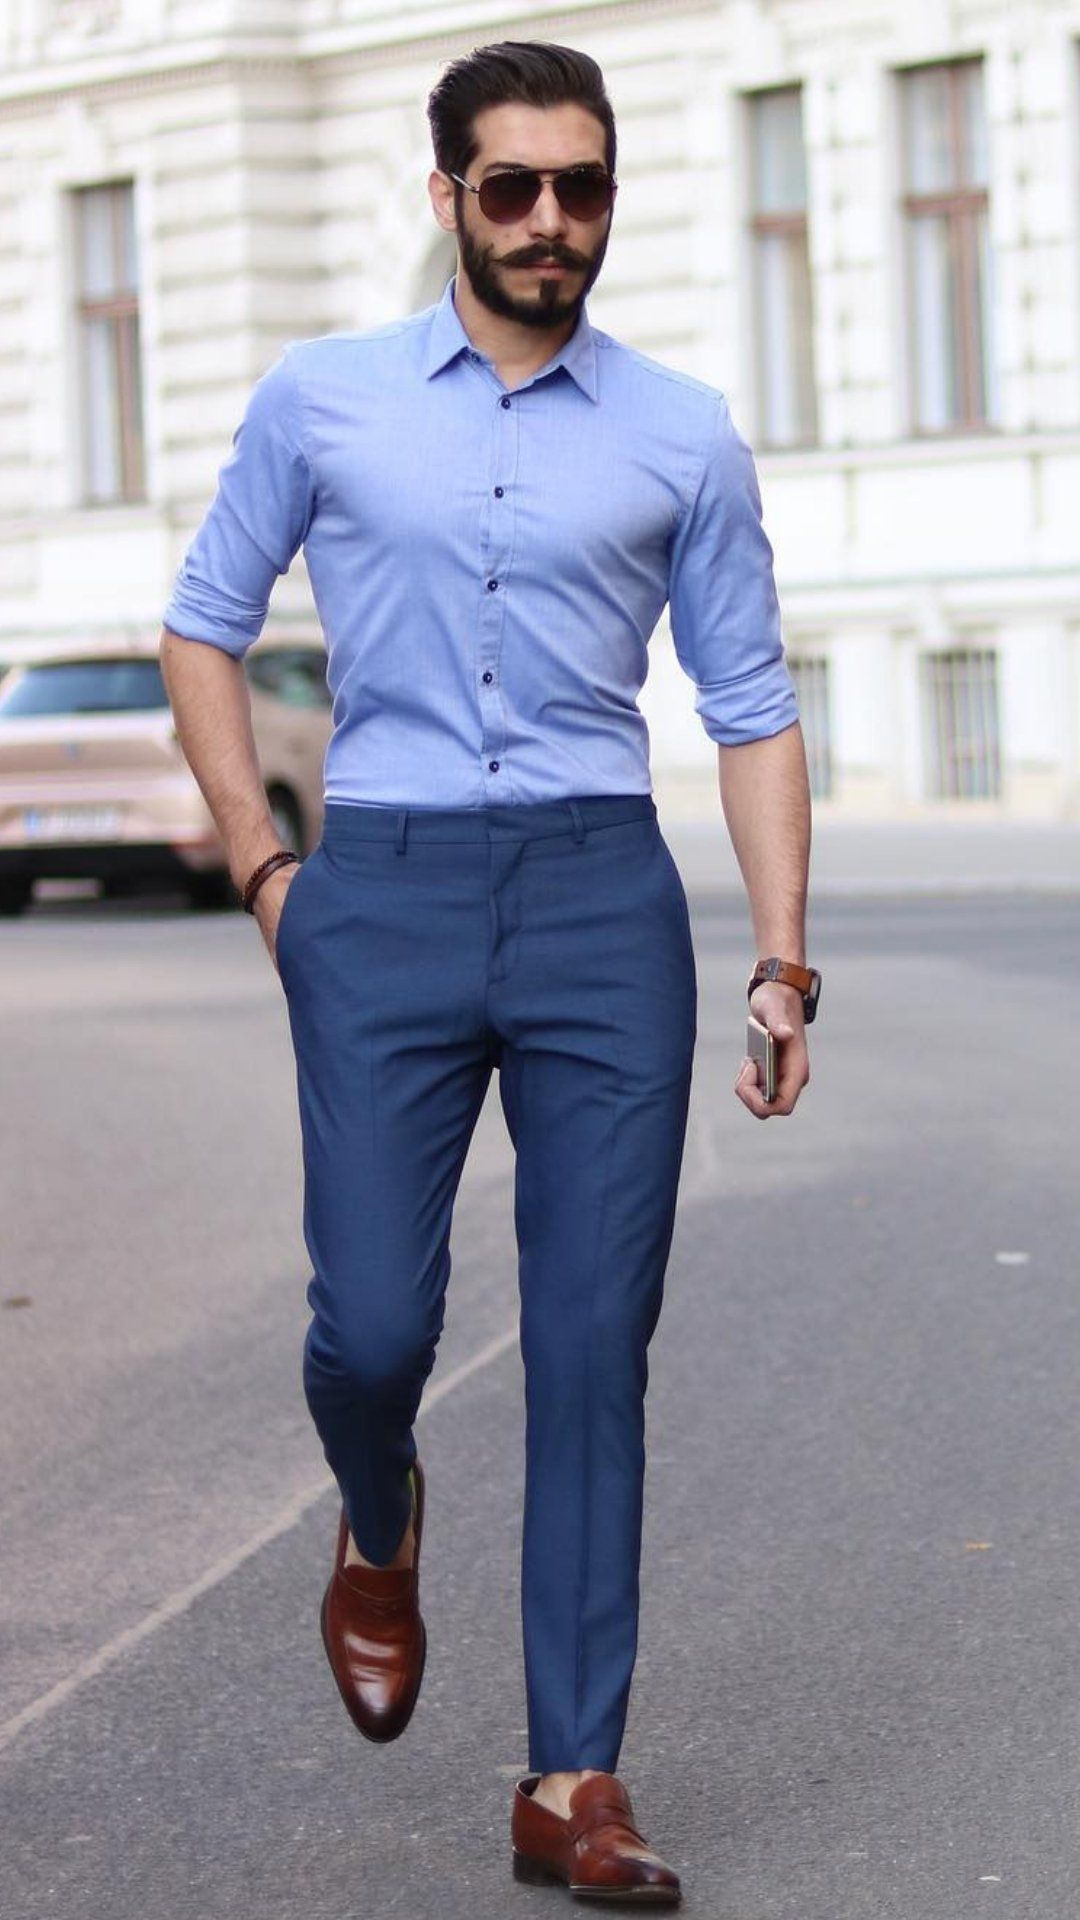 c39f58216 5 Best Shirt And Pant Combinations For Men #shirts #pants #mens #fashion